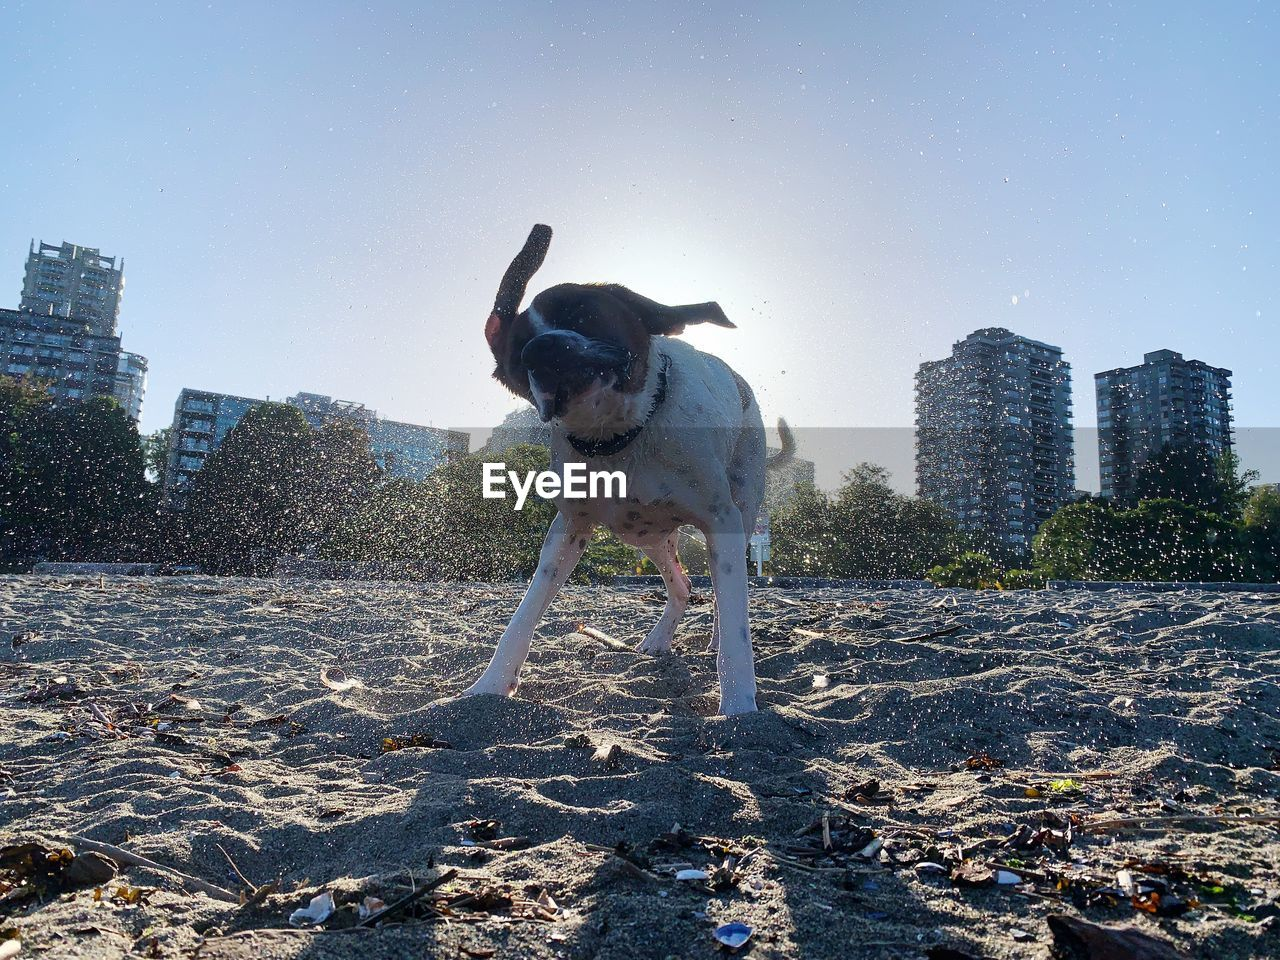 DOG STANDING ON CITY AGAINST SKY